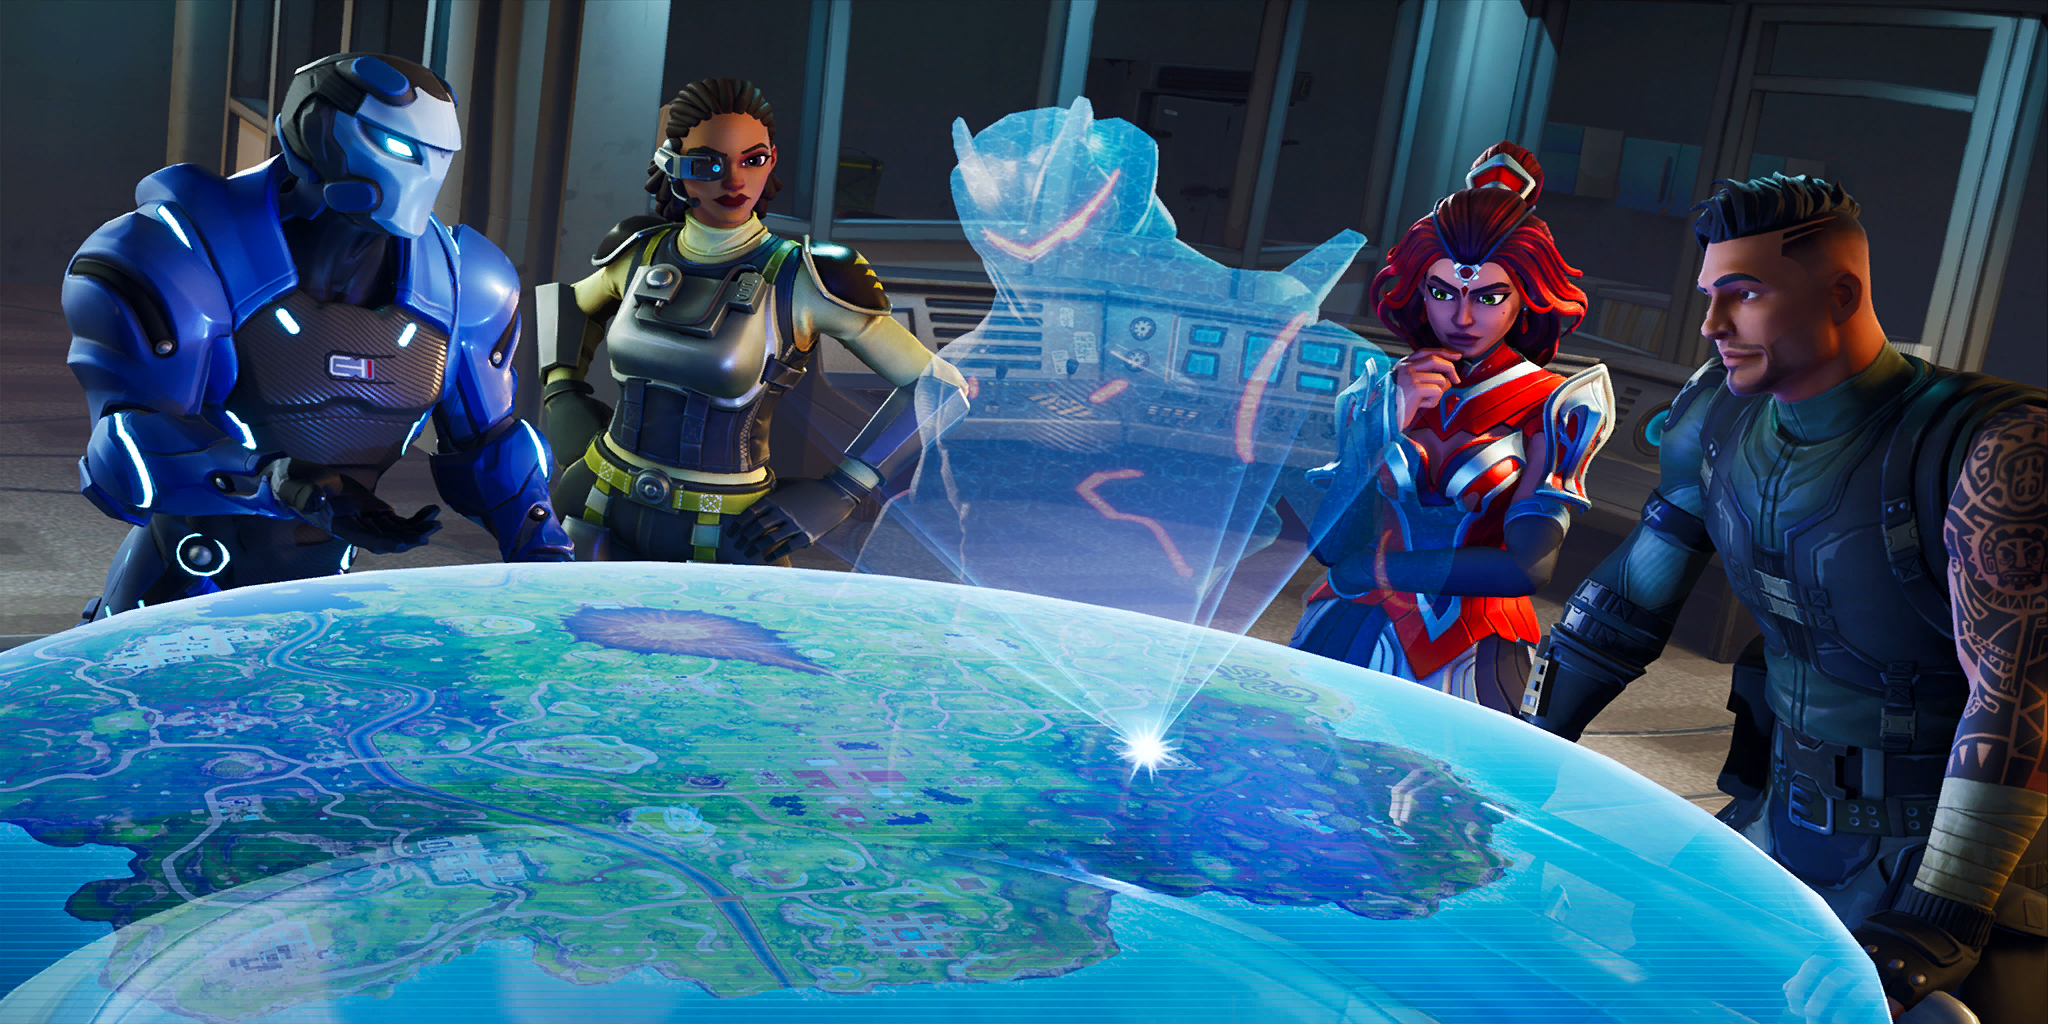 fortnite loading screens list all seasons images battle pass pro game guides - fortnite abstrakt loading screen